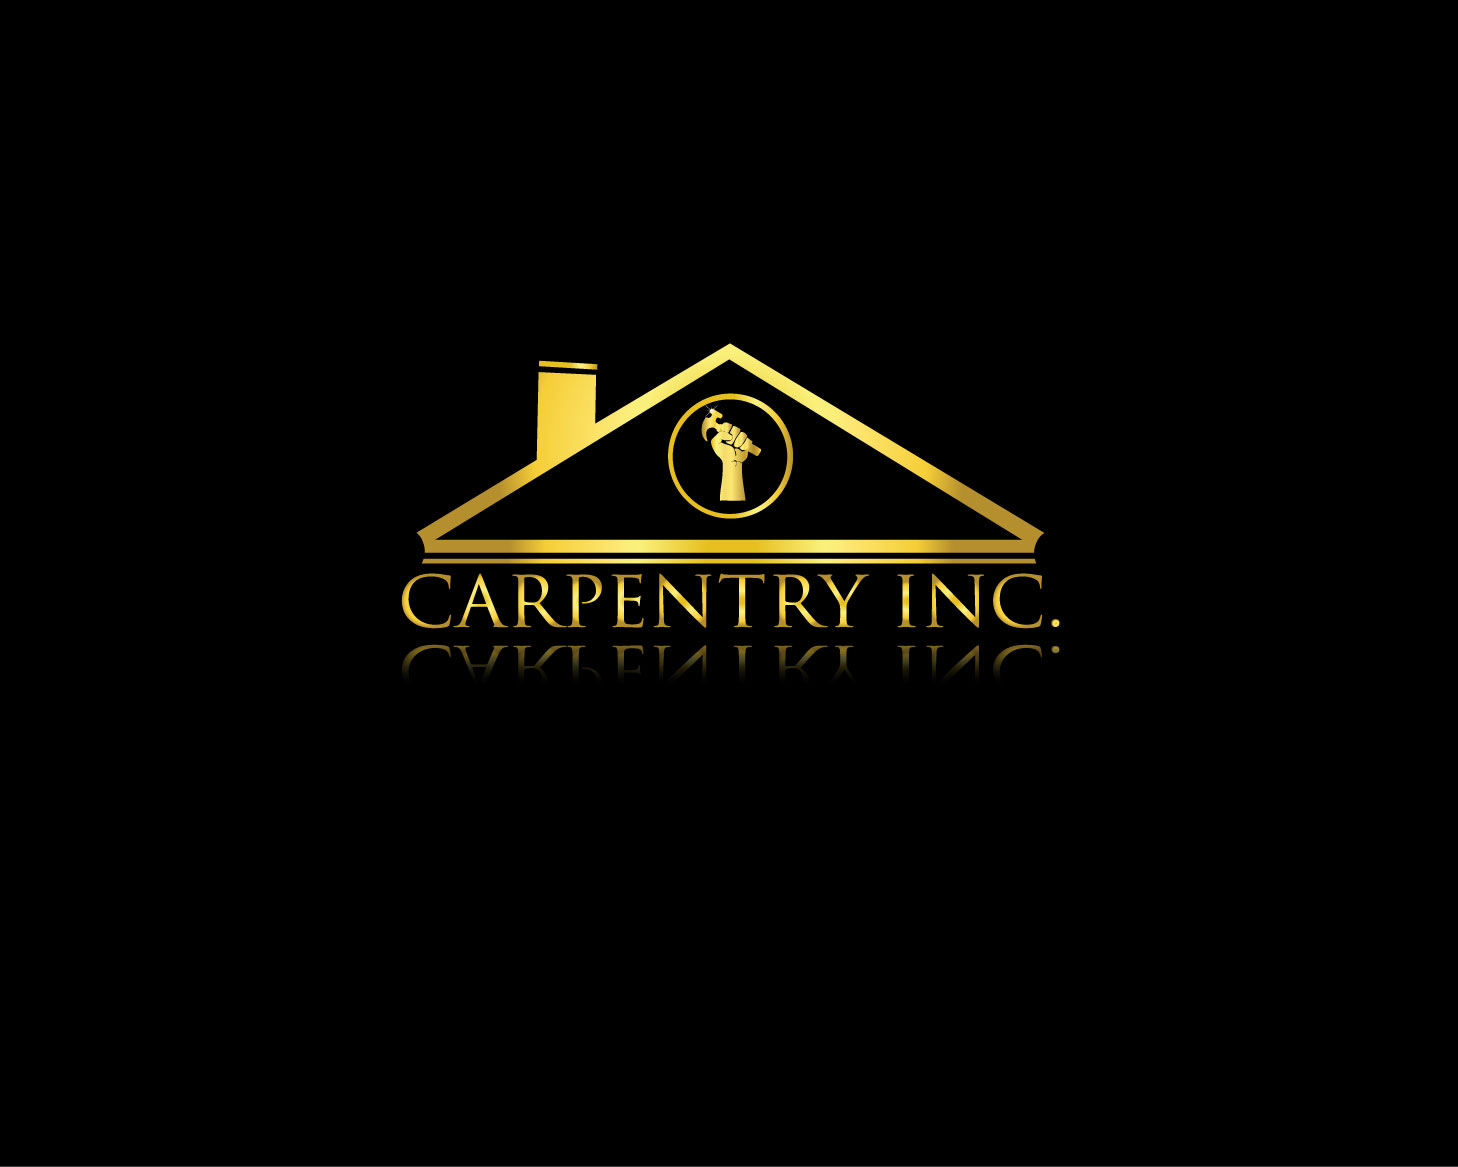 Logo Design by Rowel Samson - Entry No. 25 in the Logo Design Contest Creative Logo Design for Carpentry inc..